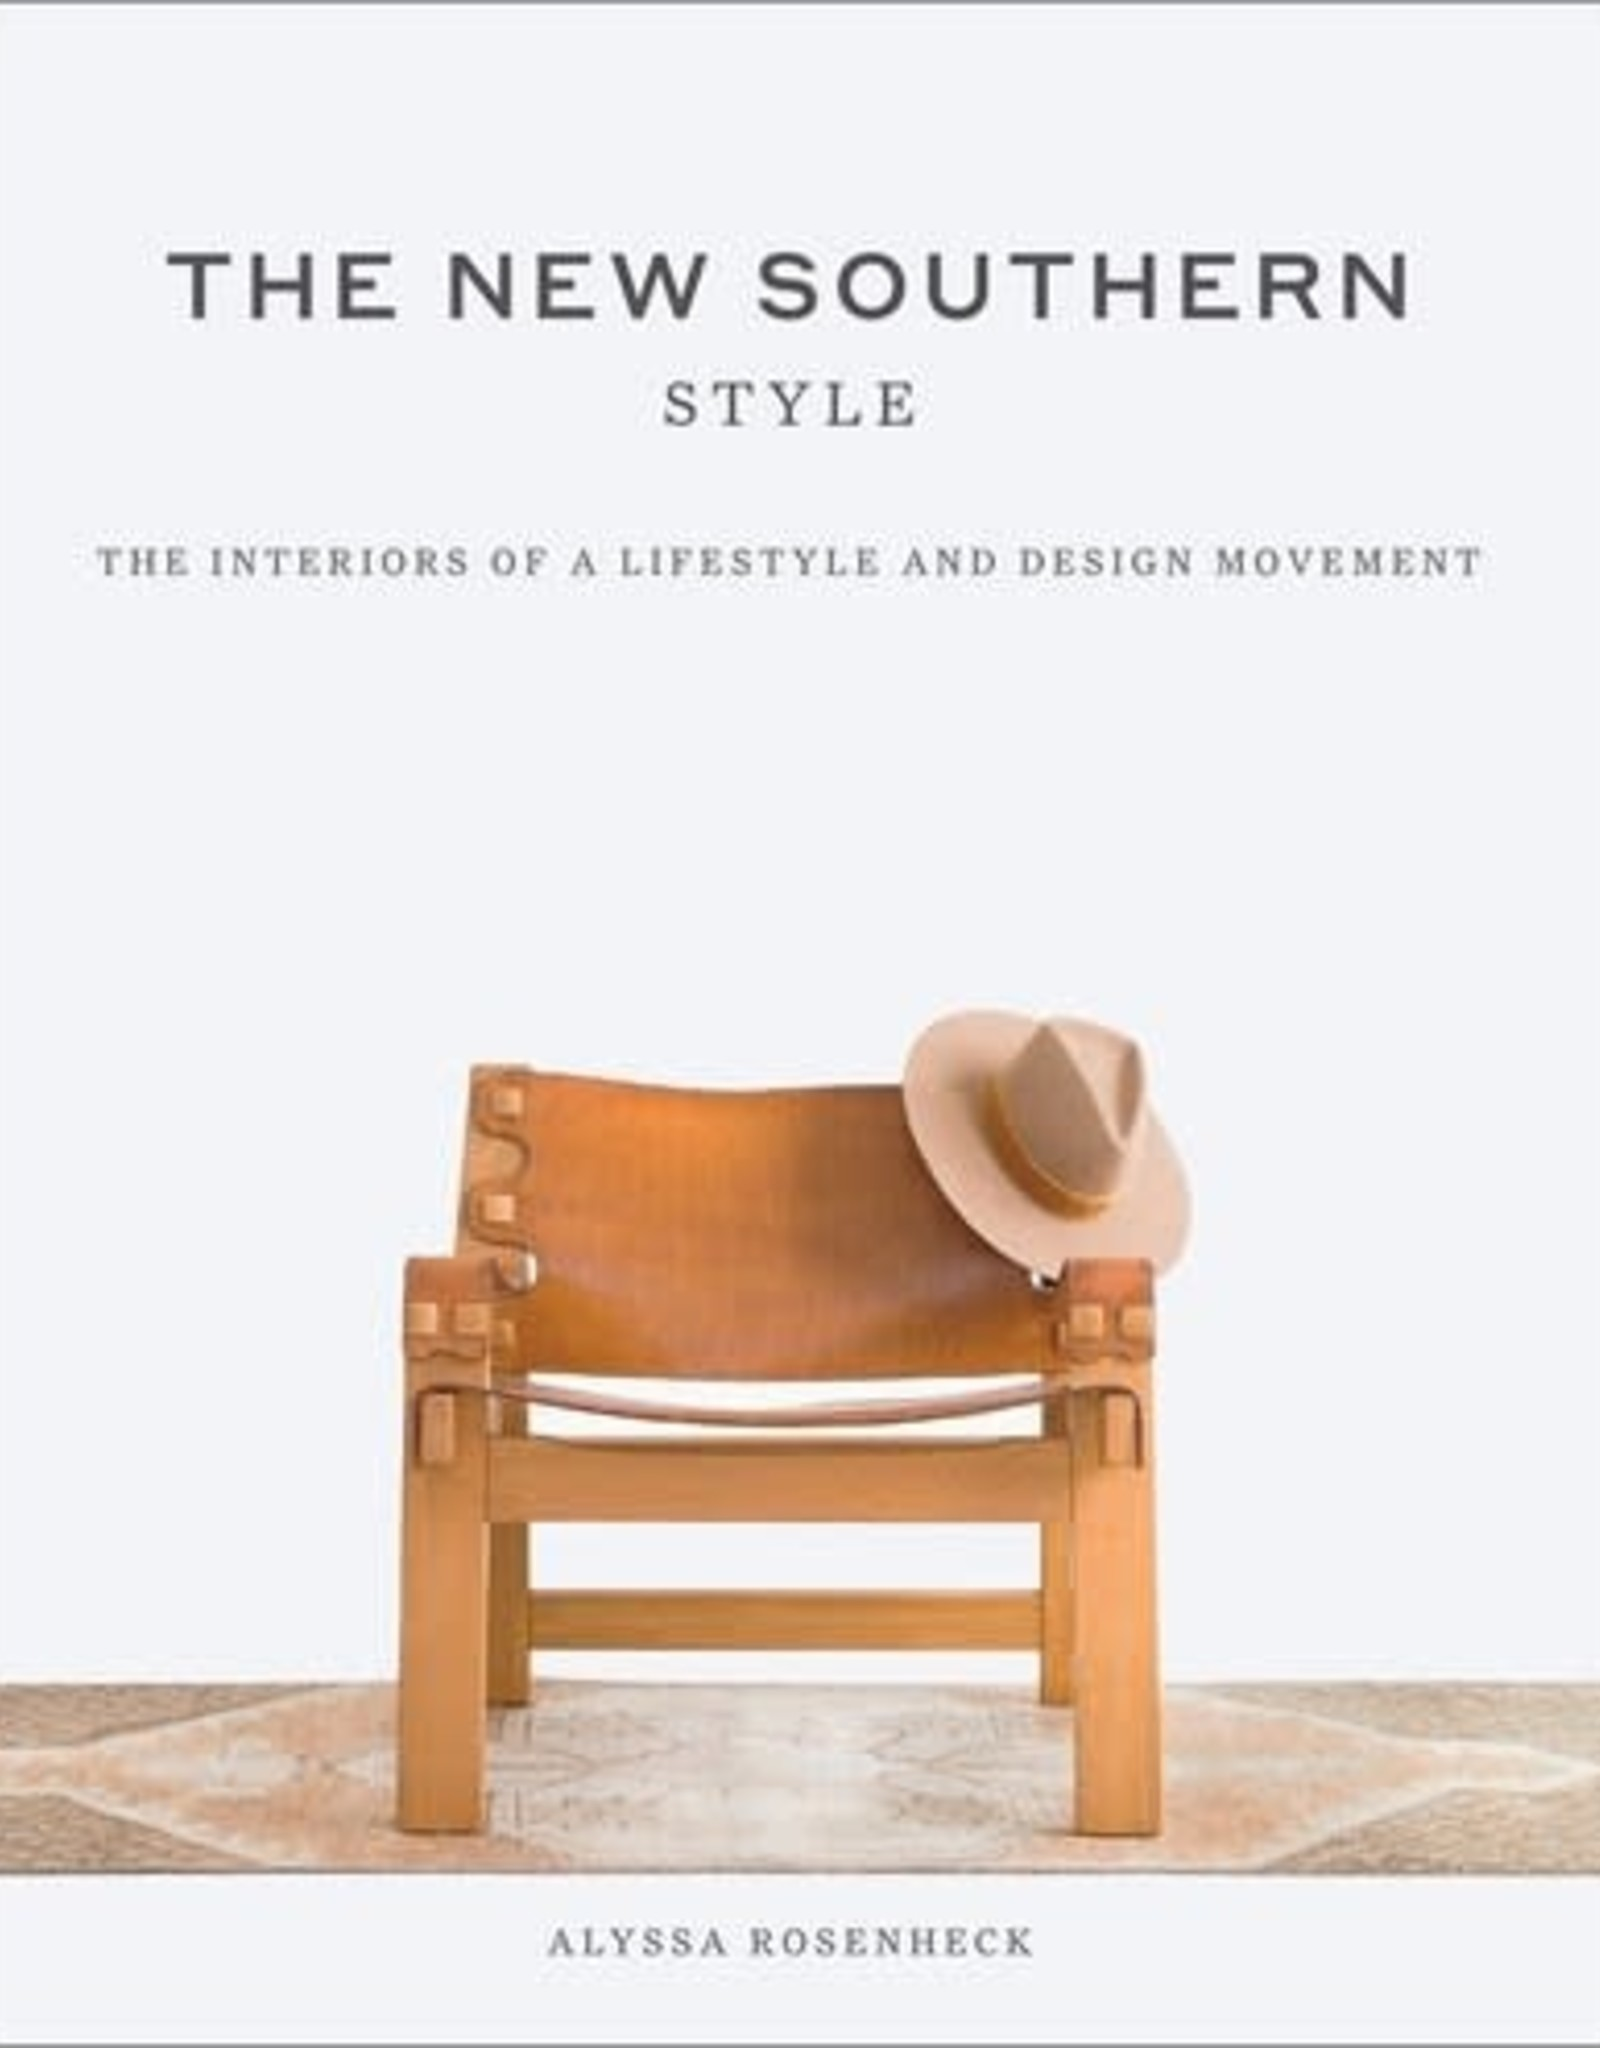 THE NEW SOUTHERN STYLE